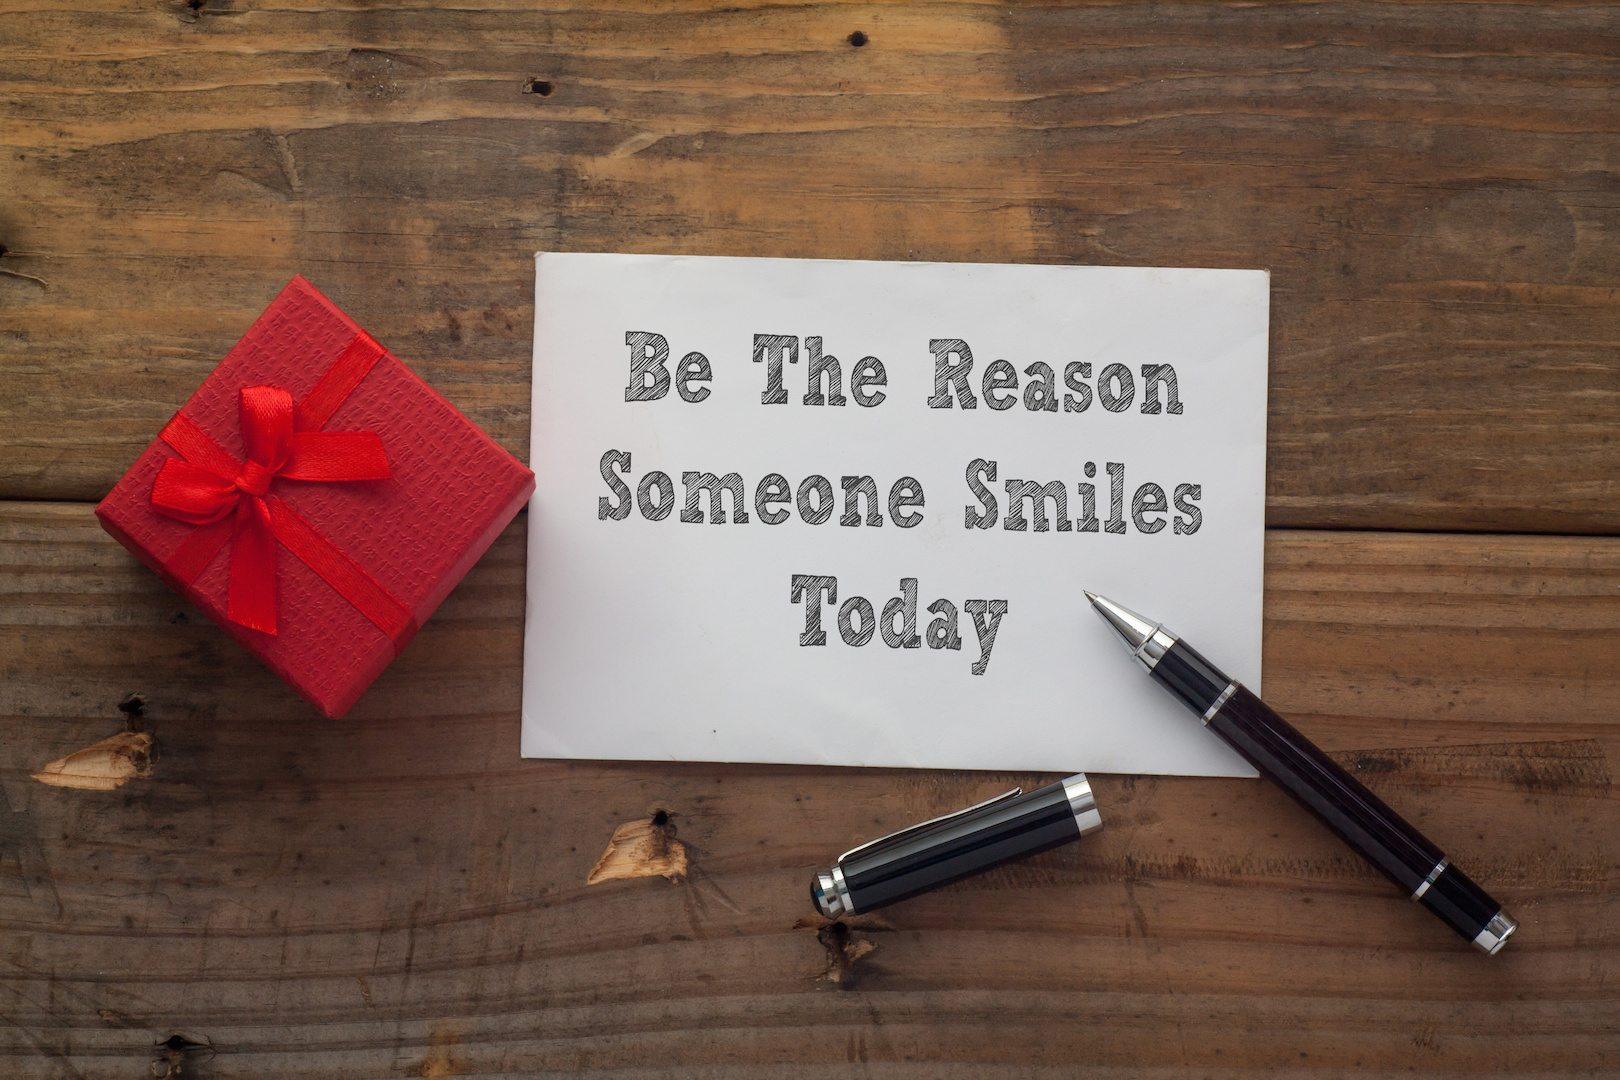 Life is a gift Be The Reason kindness - Adobe Stock